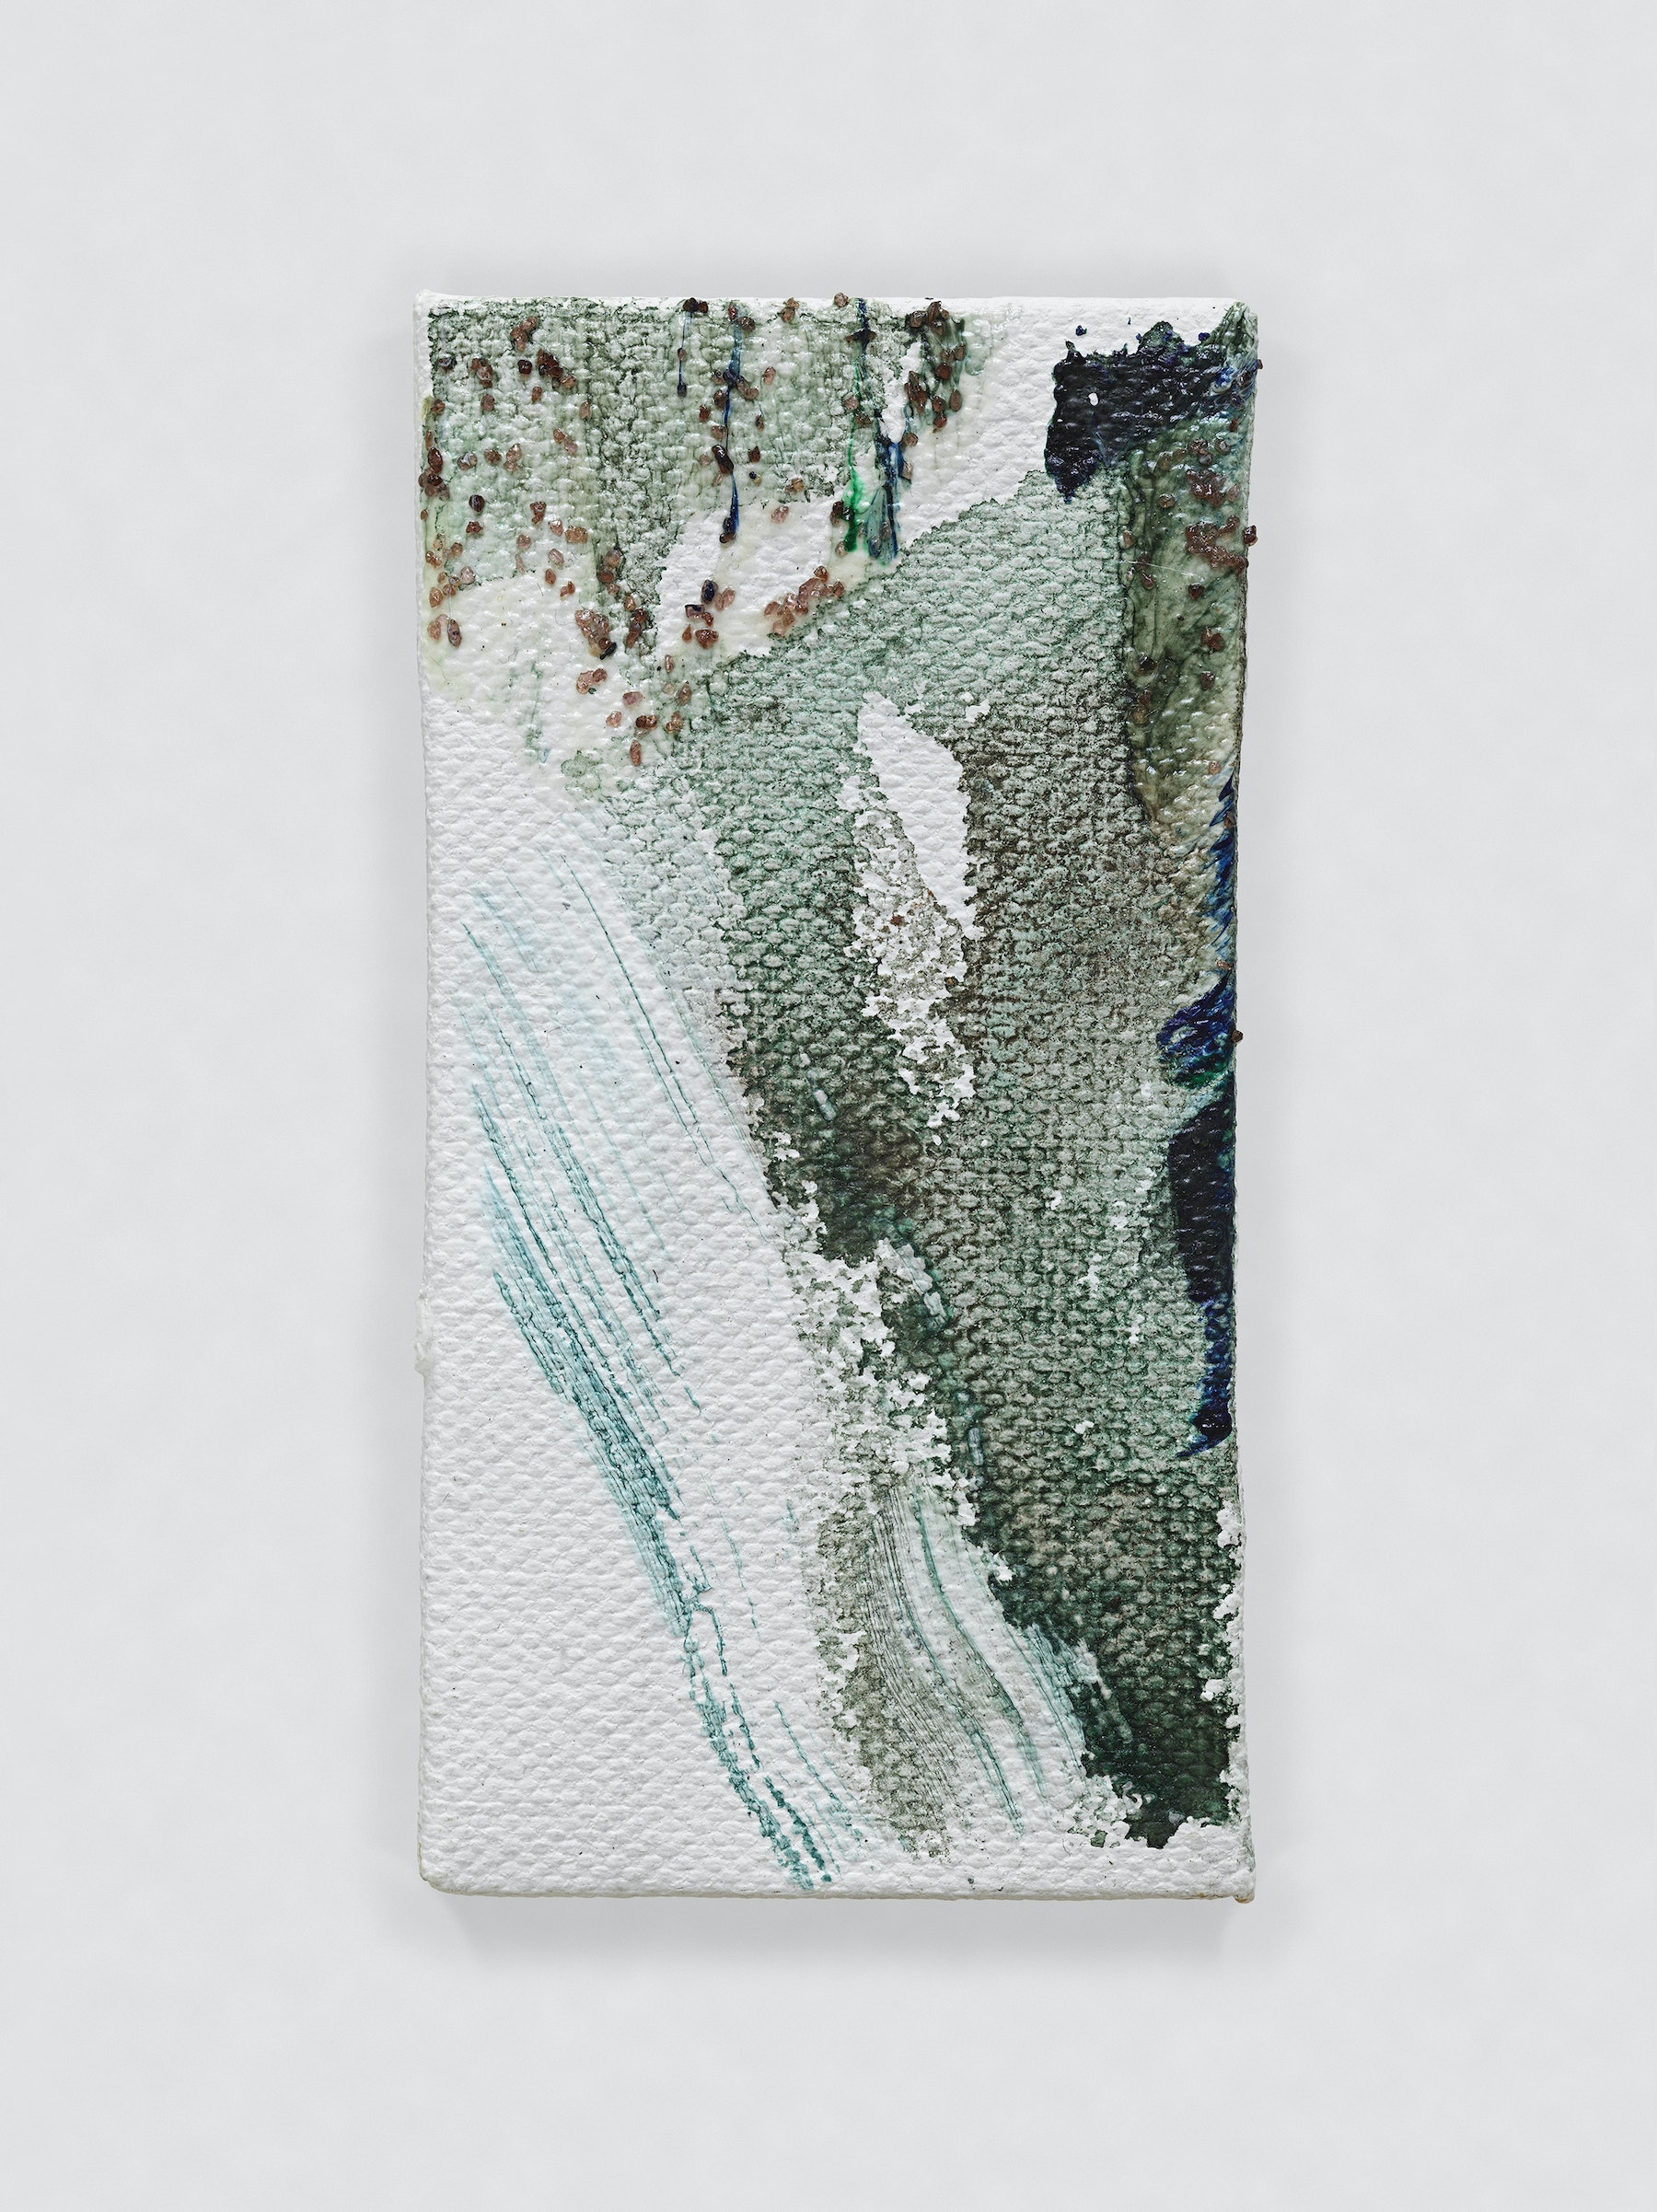 """Louise Fishman """"UNTITLED,"""" 2014 Oil, sand and glue on canvas 4.06 x 2.09"""" [HxW] (10.31 x 5.31 cm) Inventory #FIS142 Courtesy of the artist and Vielmetter Los Angeles Photo credit: Genevieve Hanson Signed and dated on verso"""